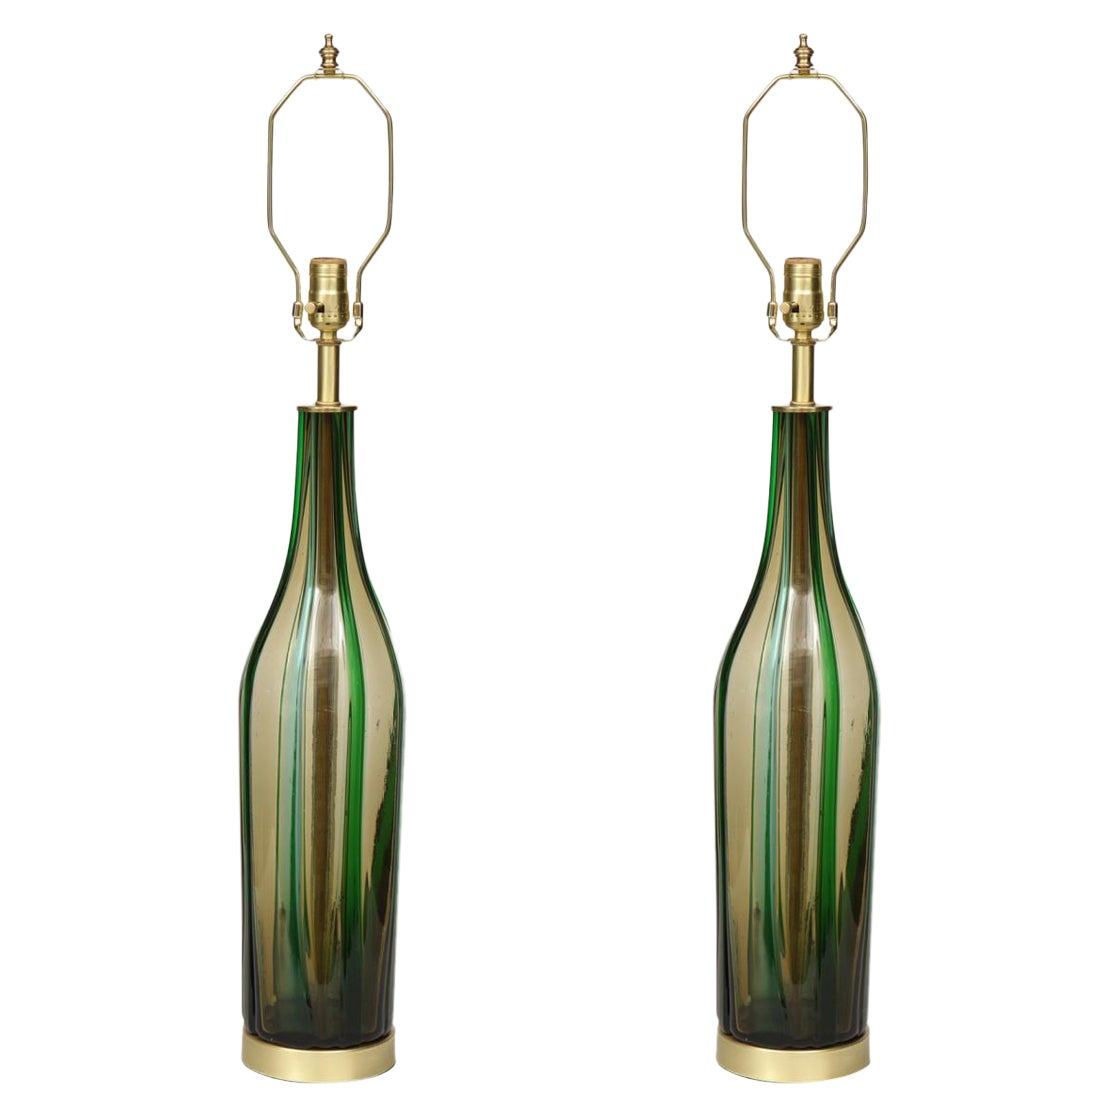 Murano Olive Green, Vertical Striped Glass Lamps